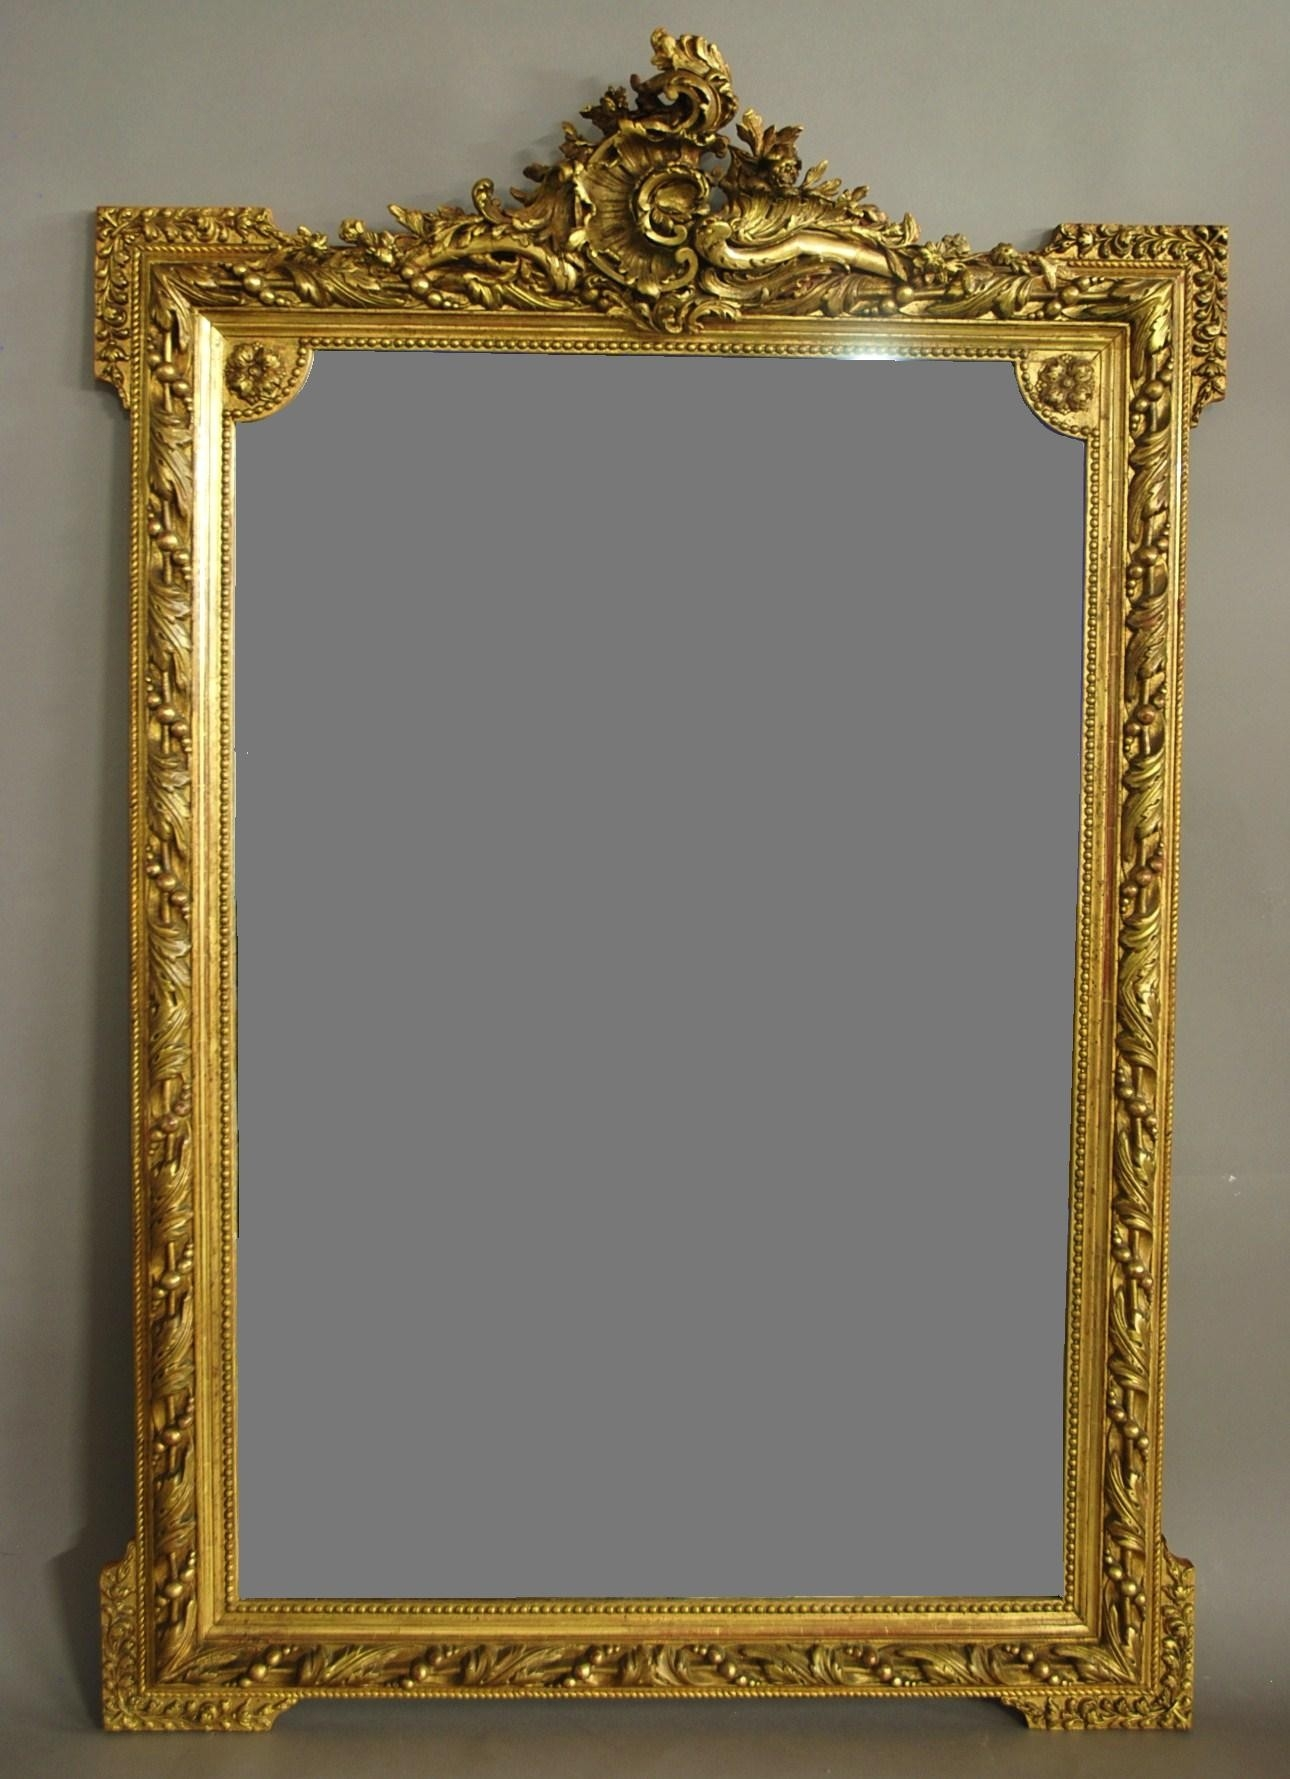 Large 19th Century Ornate French Gilt Mirror 1880 France From Regarding Ornate Gilt Mirrors (Image 7 of 15)